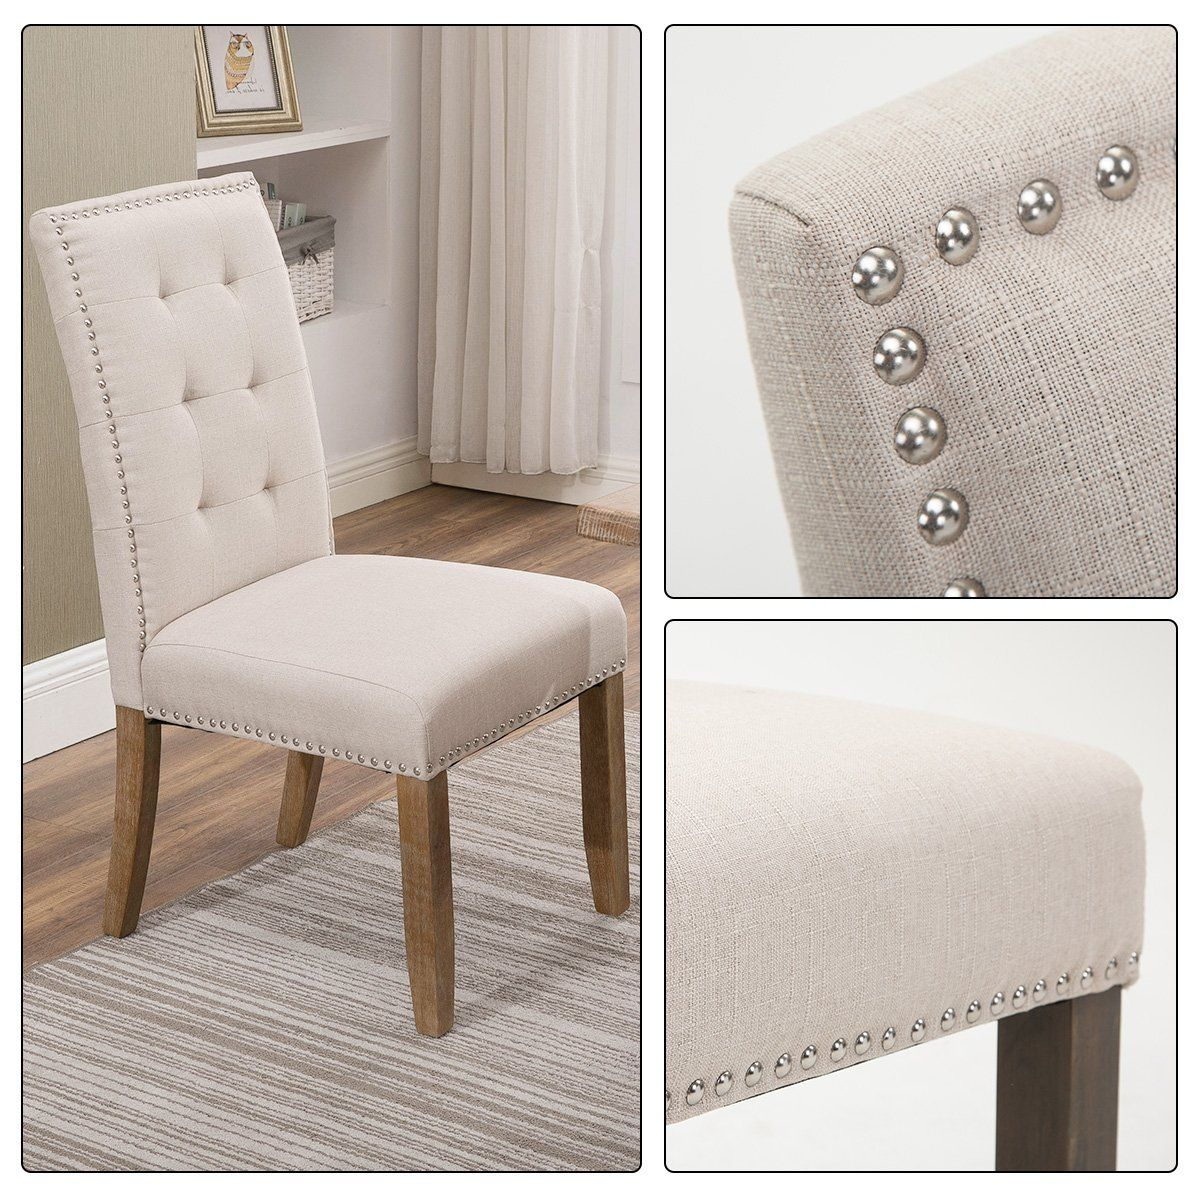 Tufted Dining Chairs With Nailhead Fabric Dining Chairs Dining Chairs Nailhead Chair